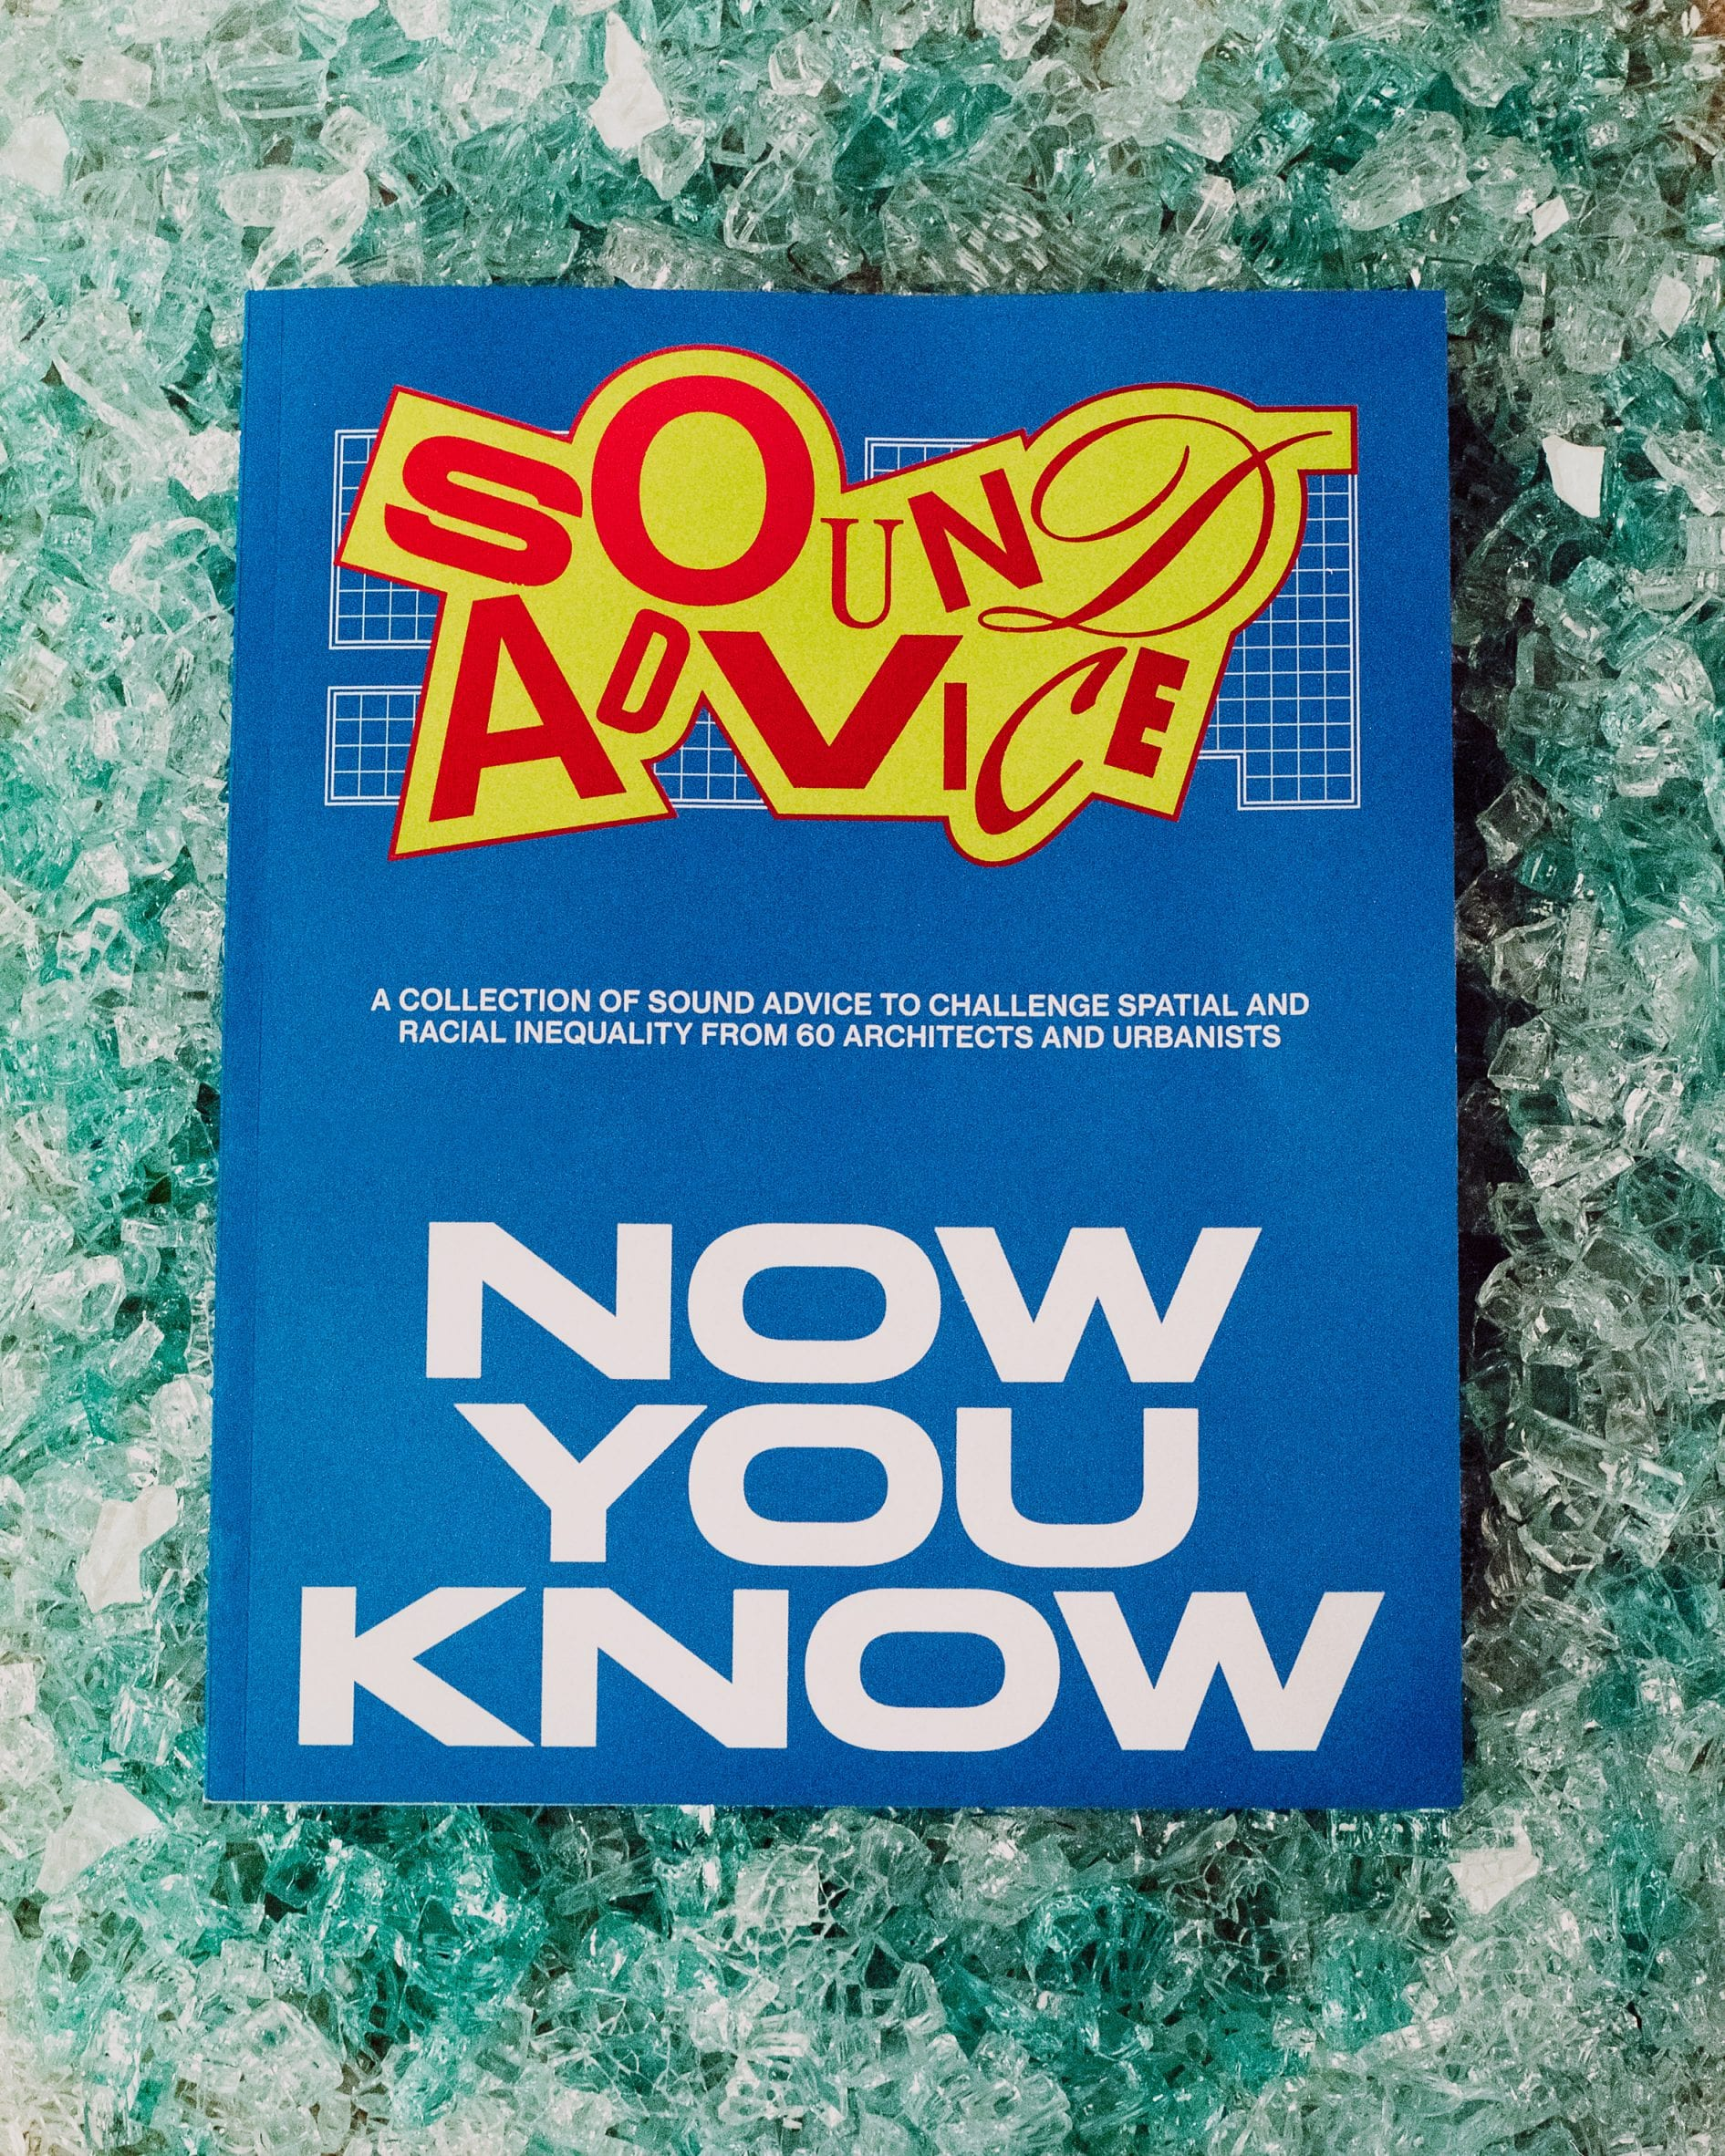 Now You Know book by Sound Advice